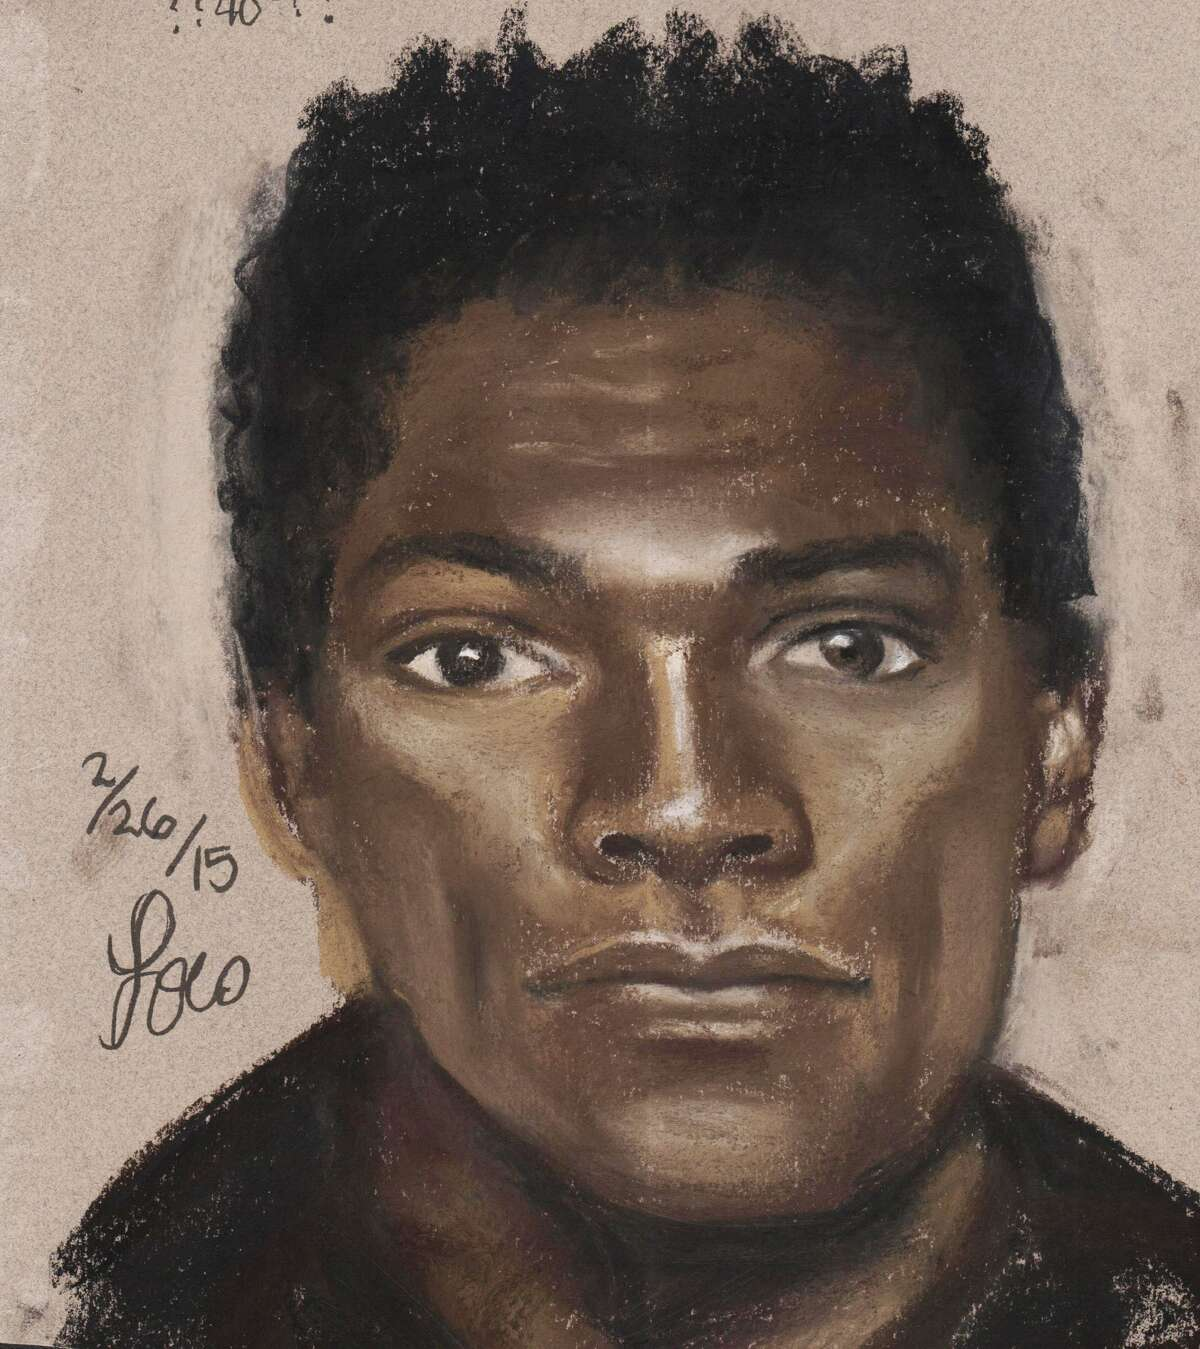 Authorities are looking for this man, who is suspected in the Feb. 12 slaying of a Brinks armored car guard.